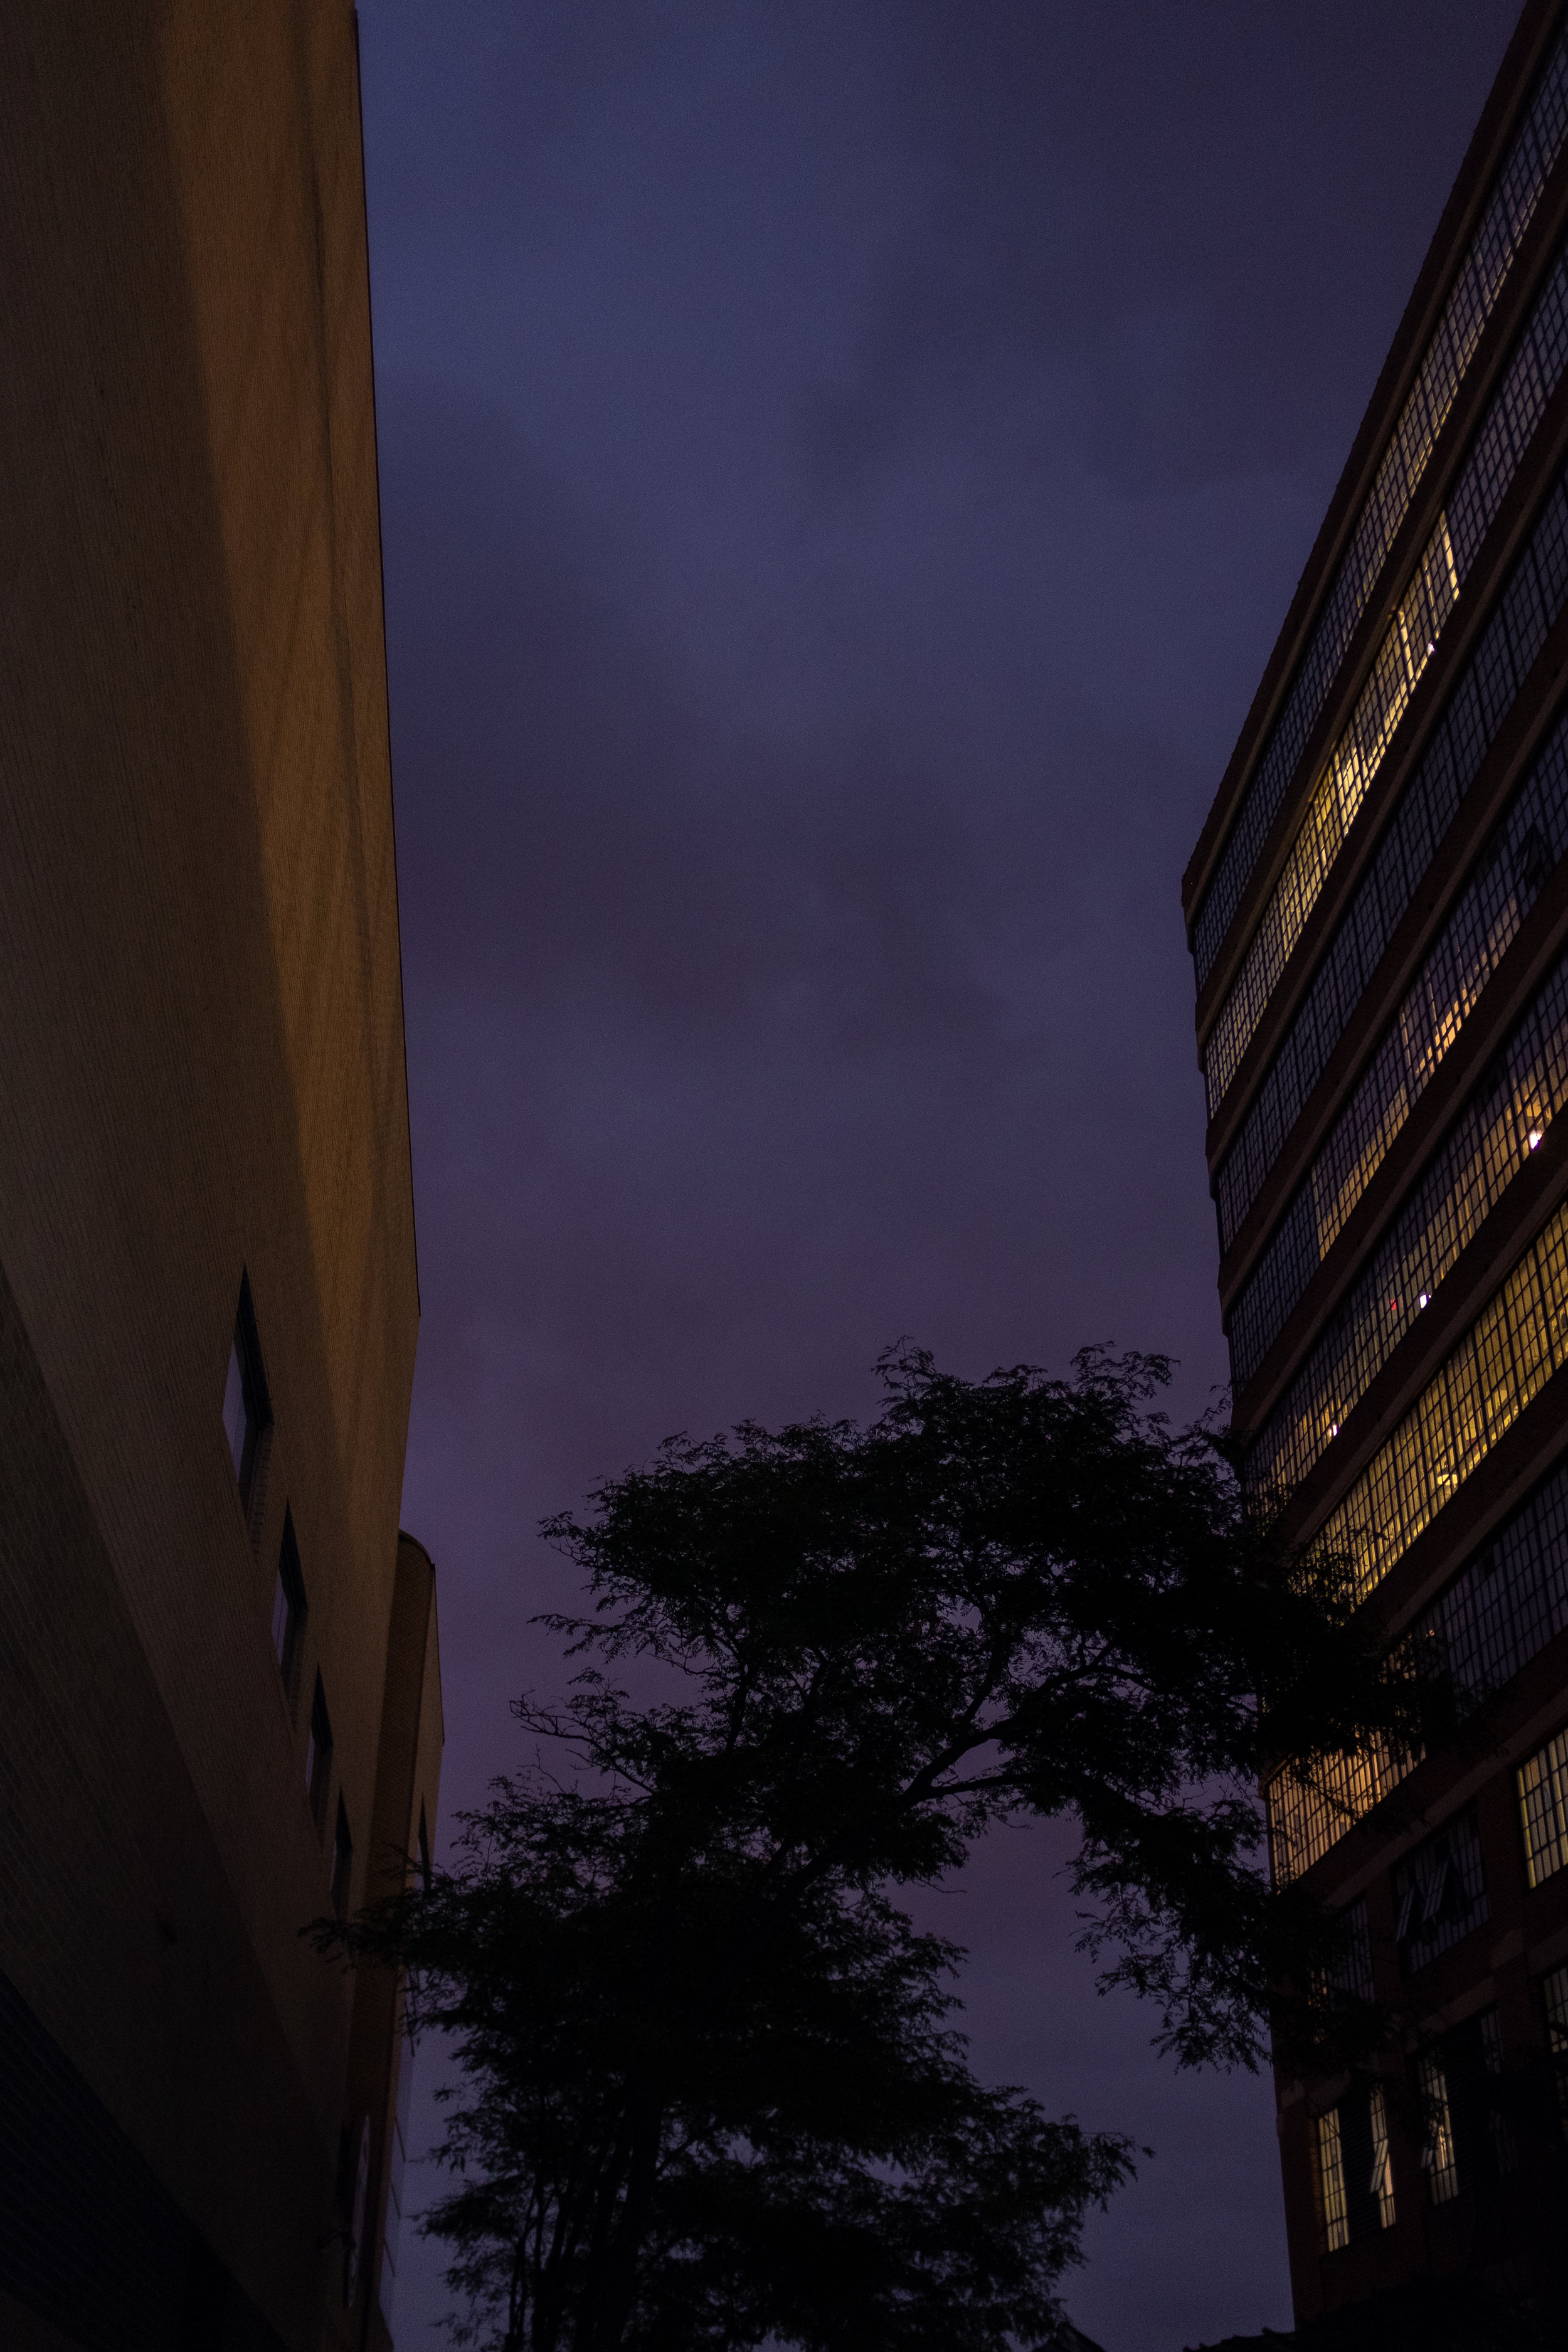 The Sky, buildings and a Tree